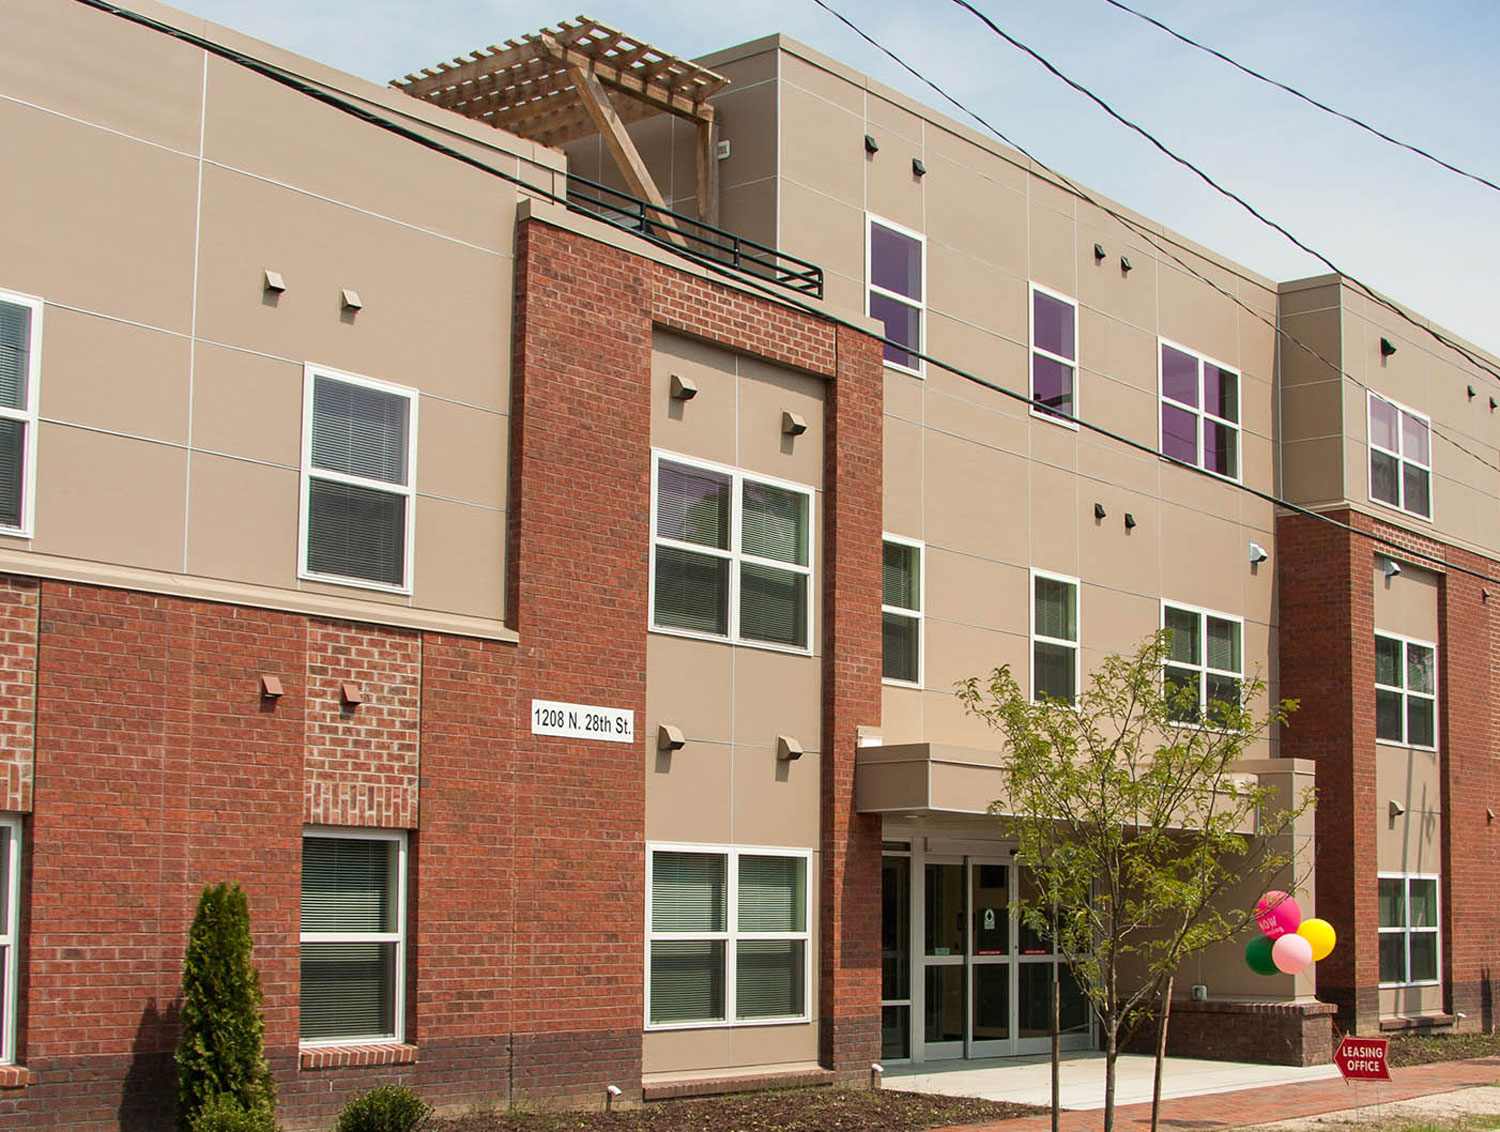 1 Bedroom Apartments In Downtown Richmond Va Home Design